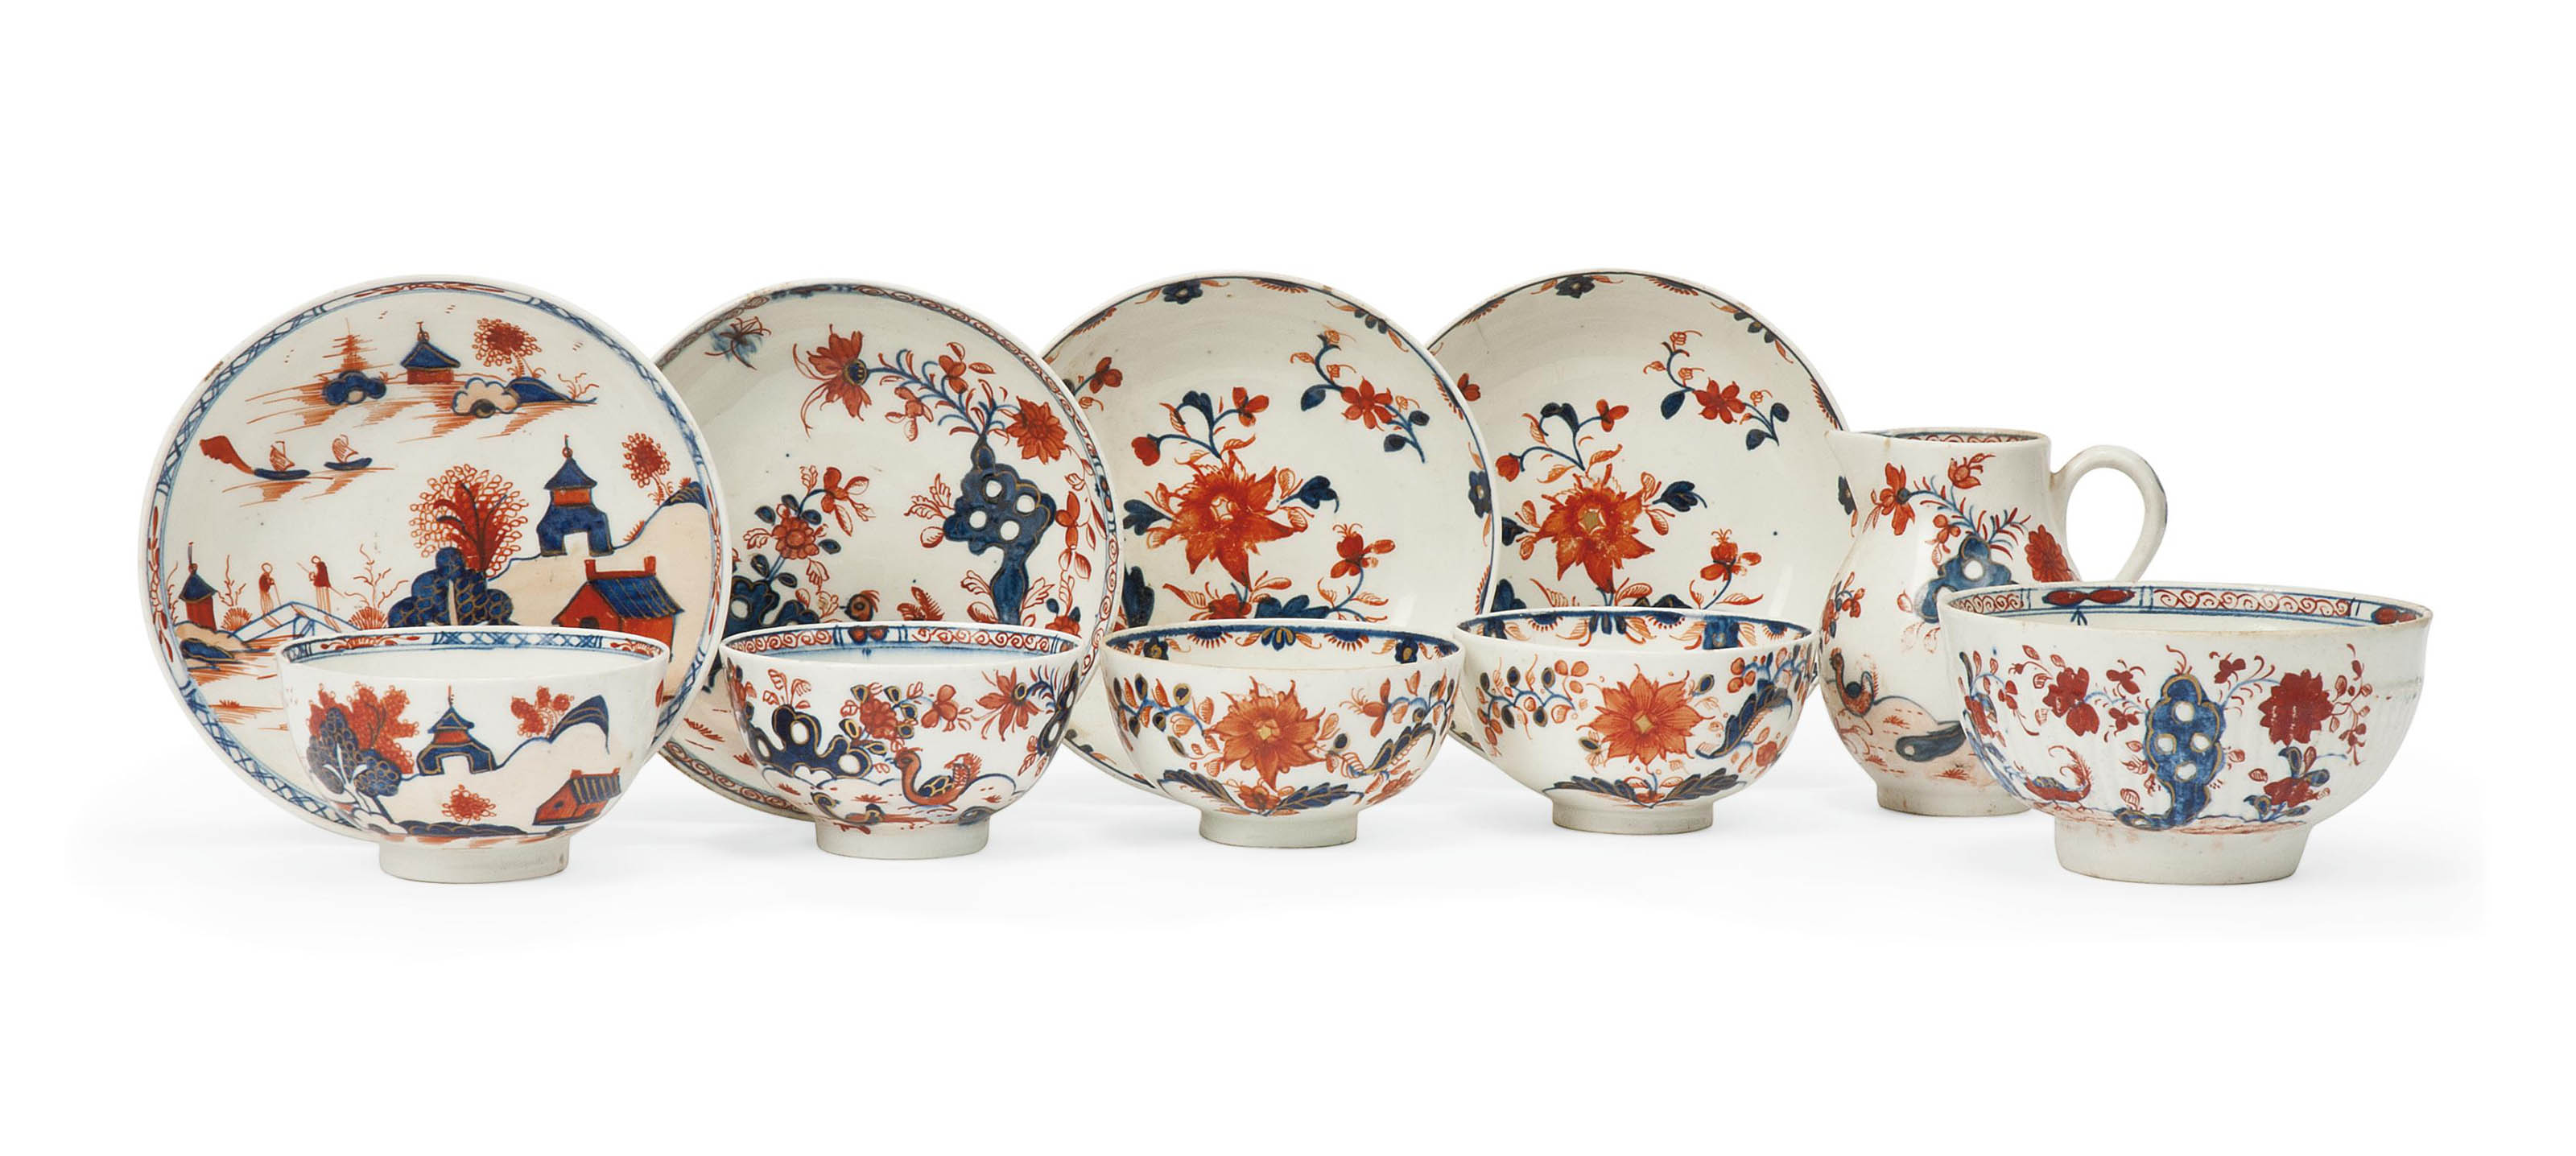 VARIOUS LOWESTOFT IMARI PATTERN WARES